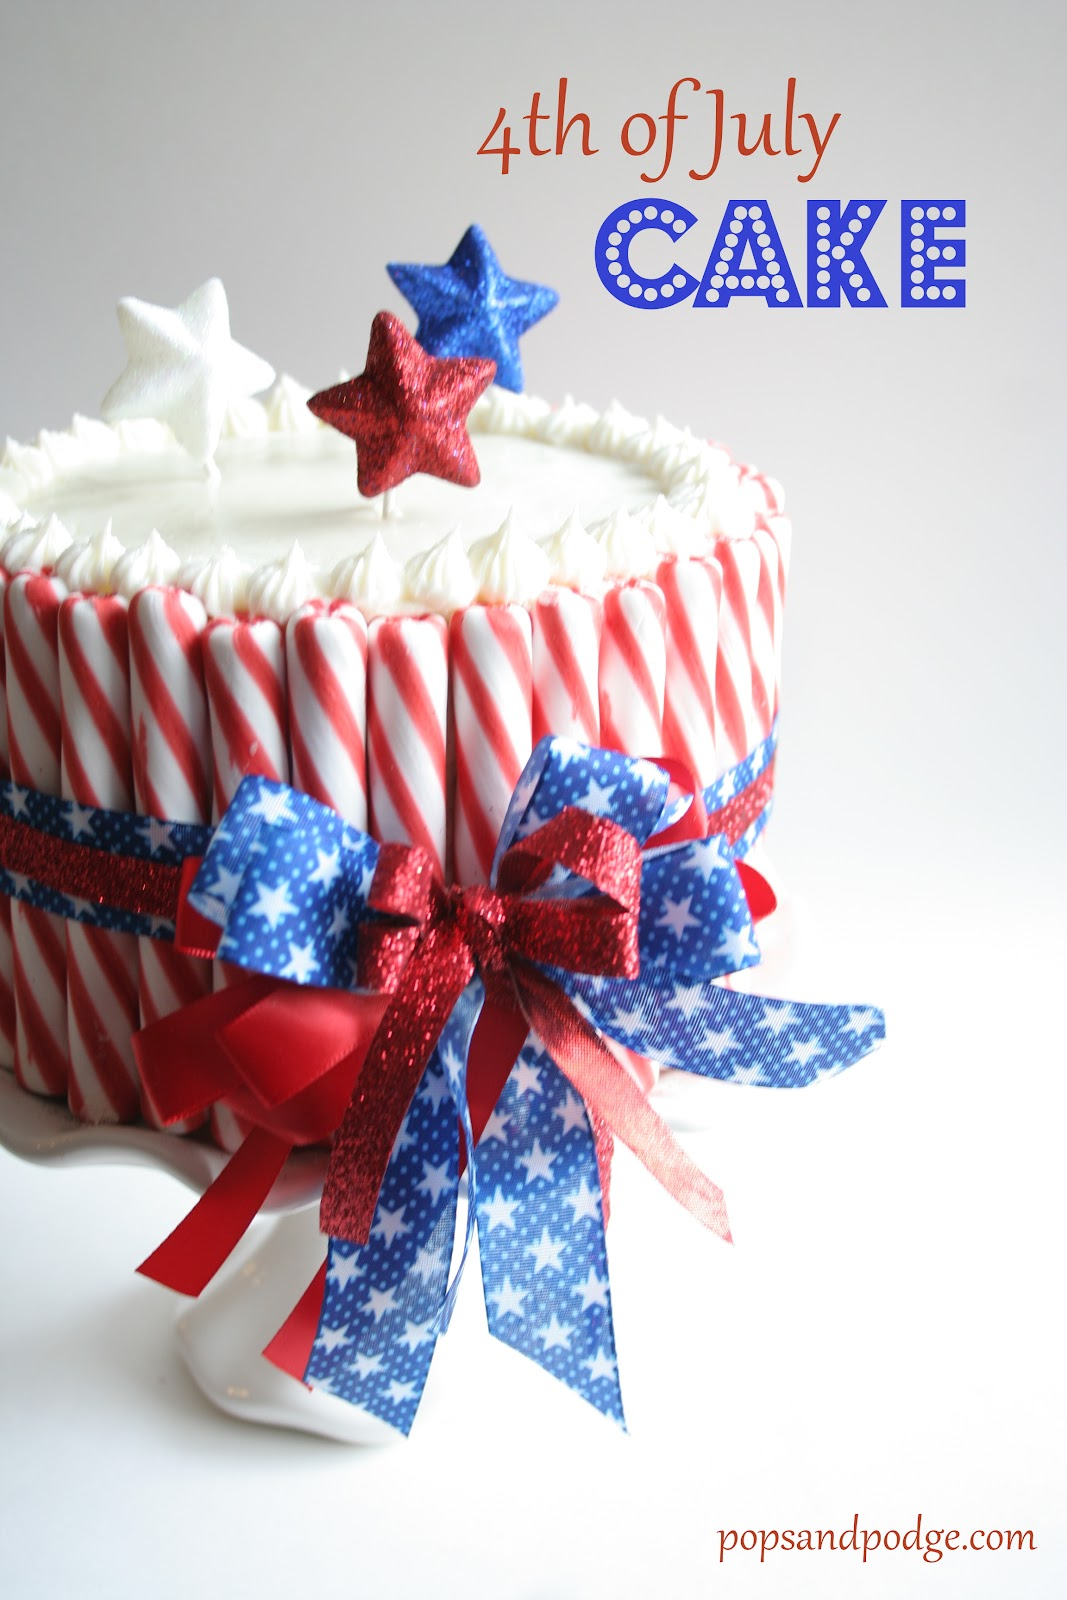 4th of july recipes cake